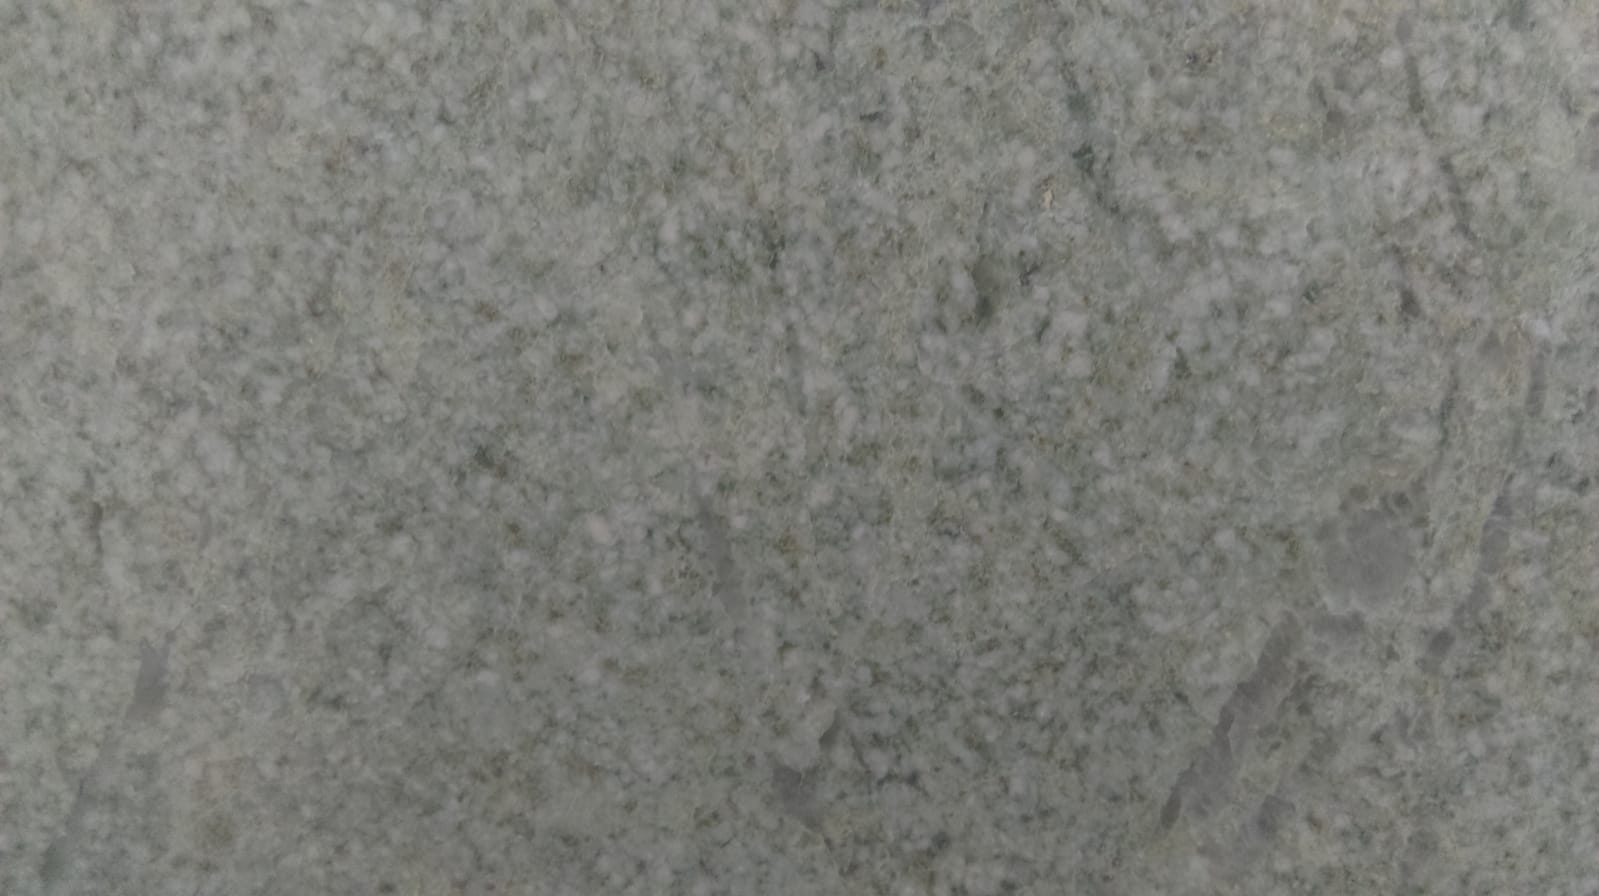 Hell Green Granite Natural stone